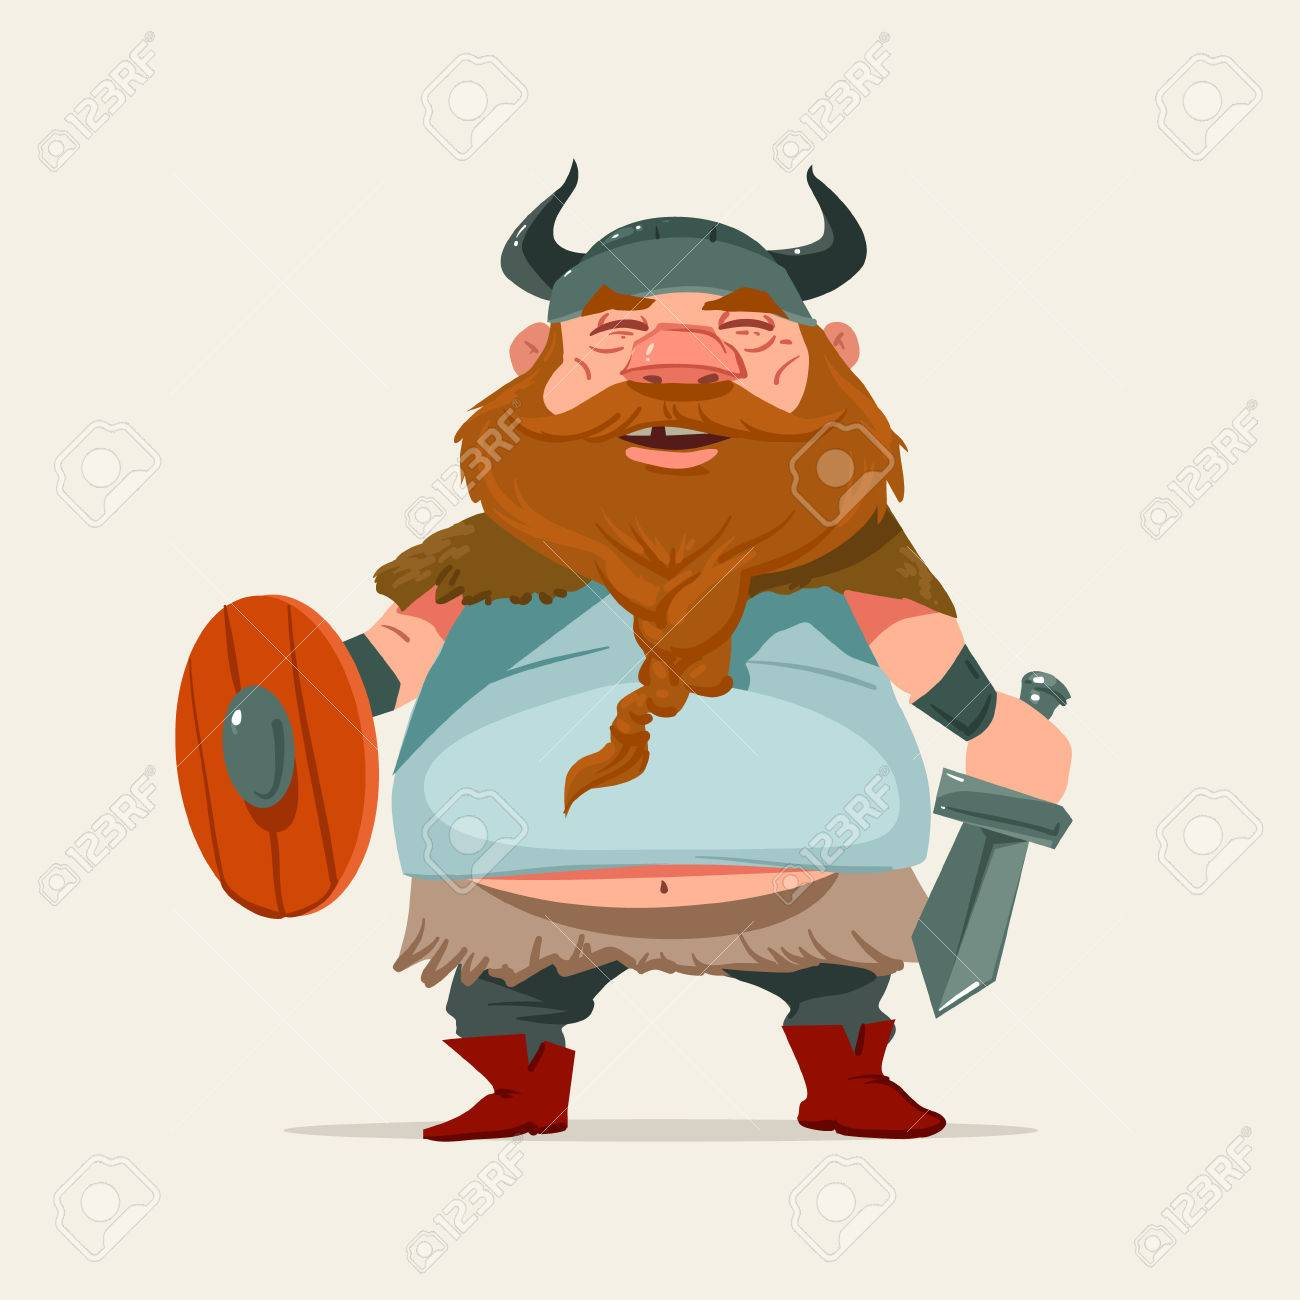 Cartoon Funny Character Viking Vector Illustration Royalty Free